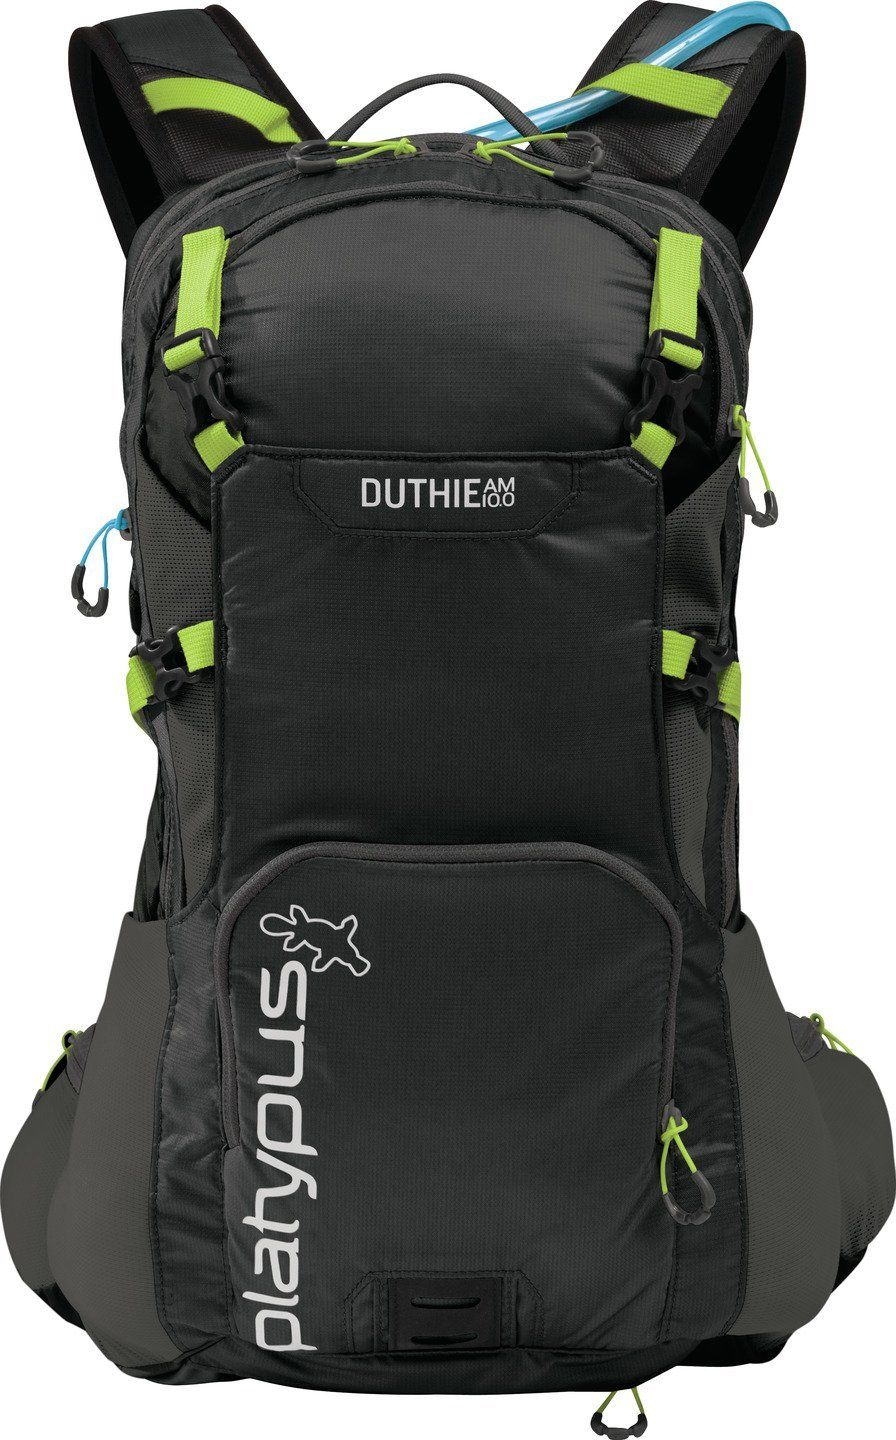 The Best Hydration Packs For Mountain Biking 2019 Hydration Pack Hiking Gear Hiking Tips